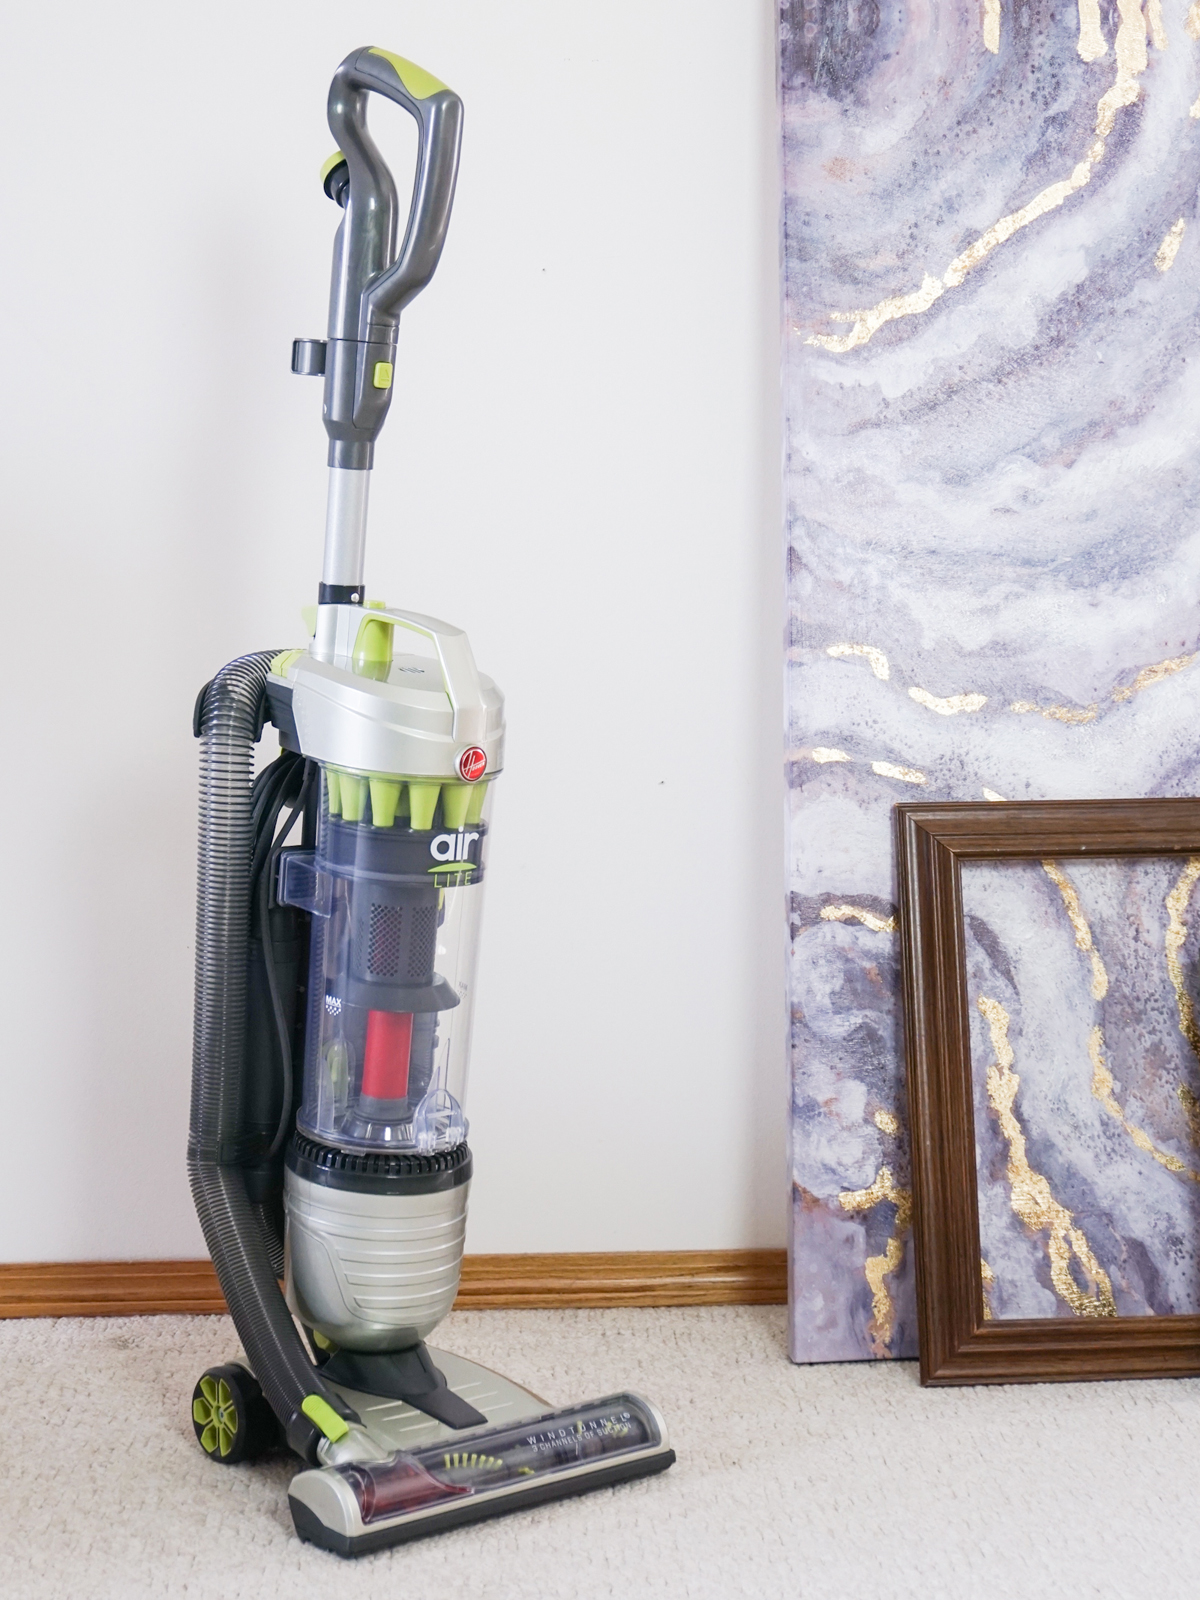 Hoover Air Lite Bagless Upright Vacuum Review How Light